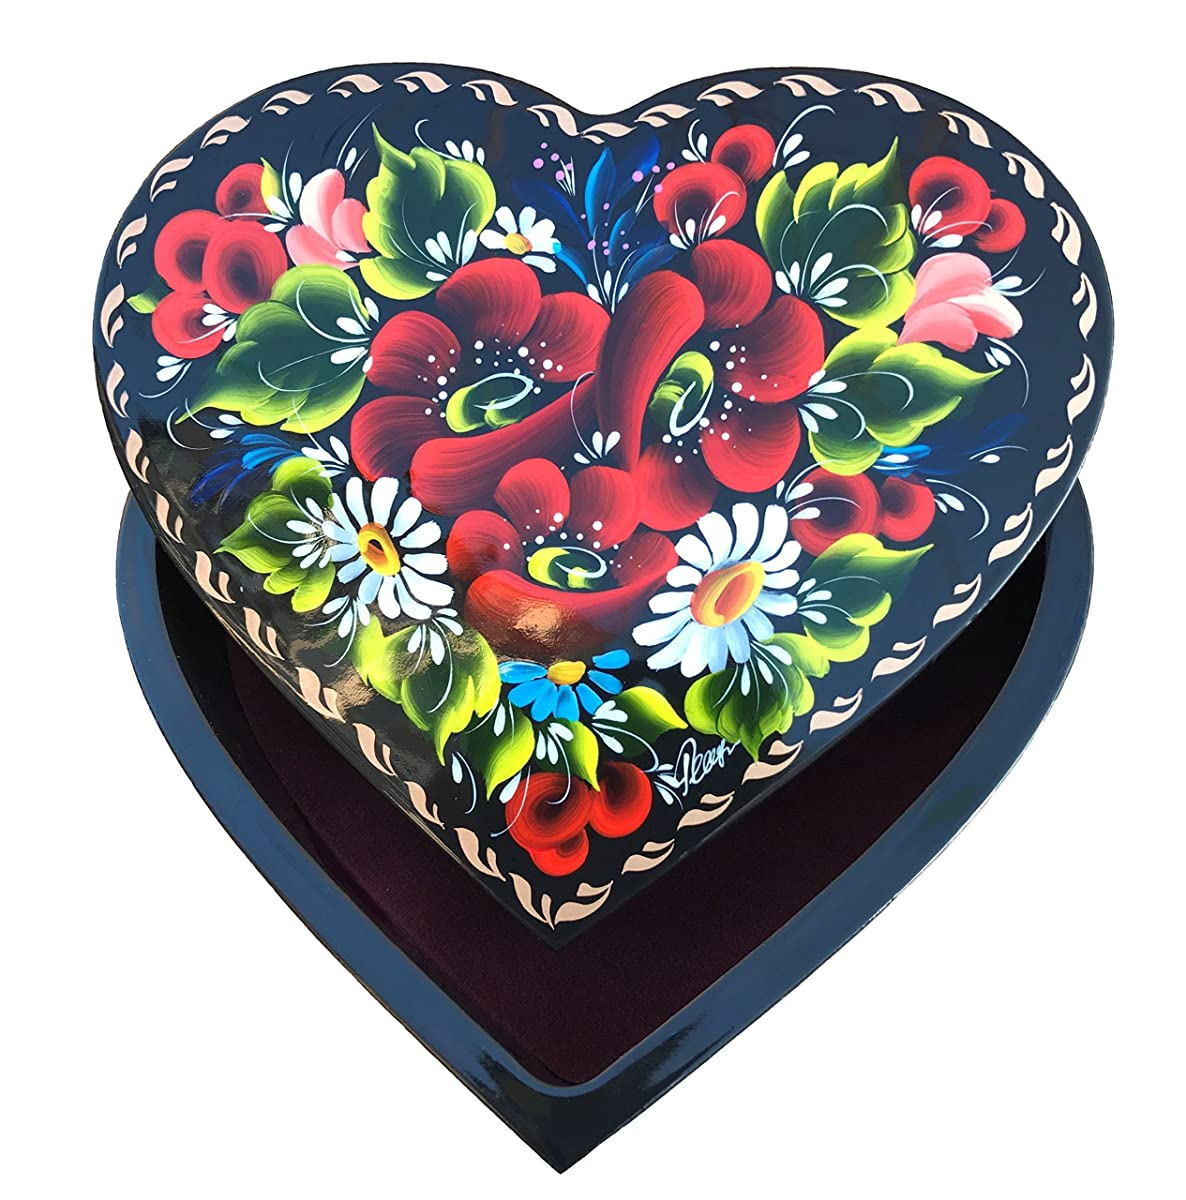 Heart-Shaped Lacquer Wooden Jewelry Box Hand Painted